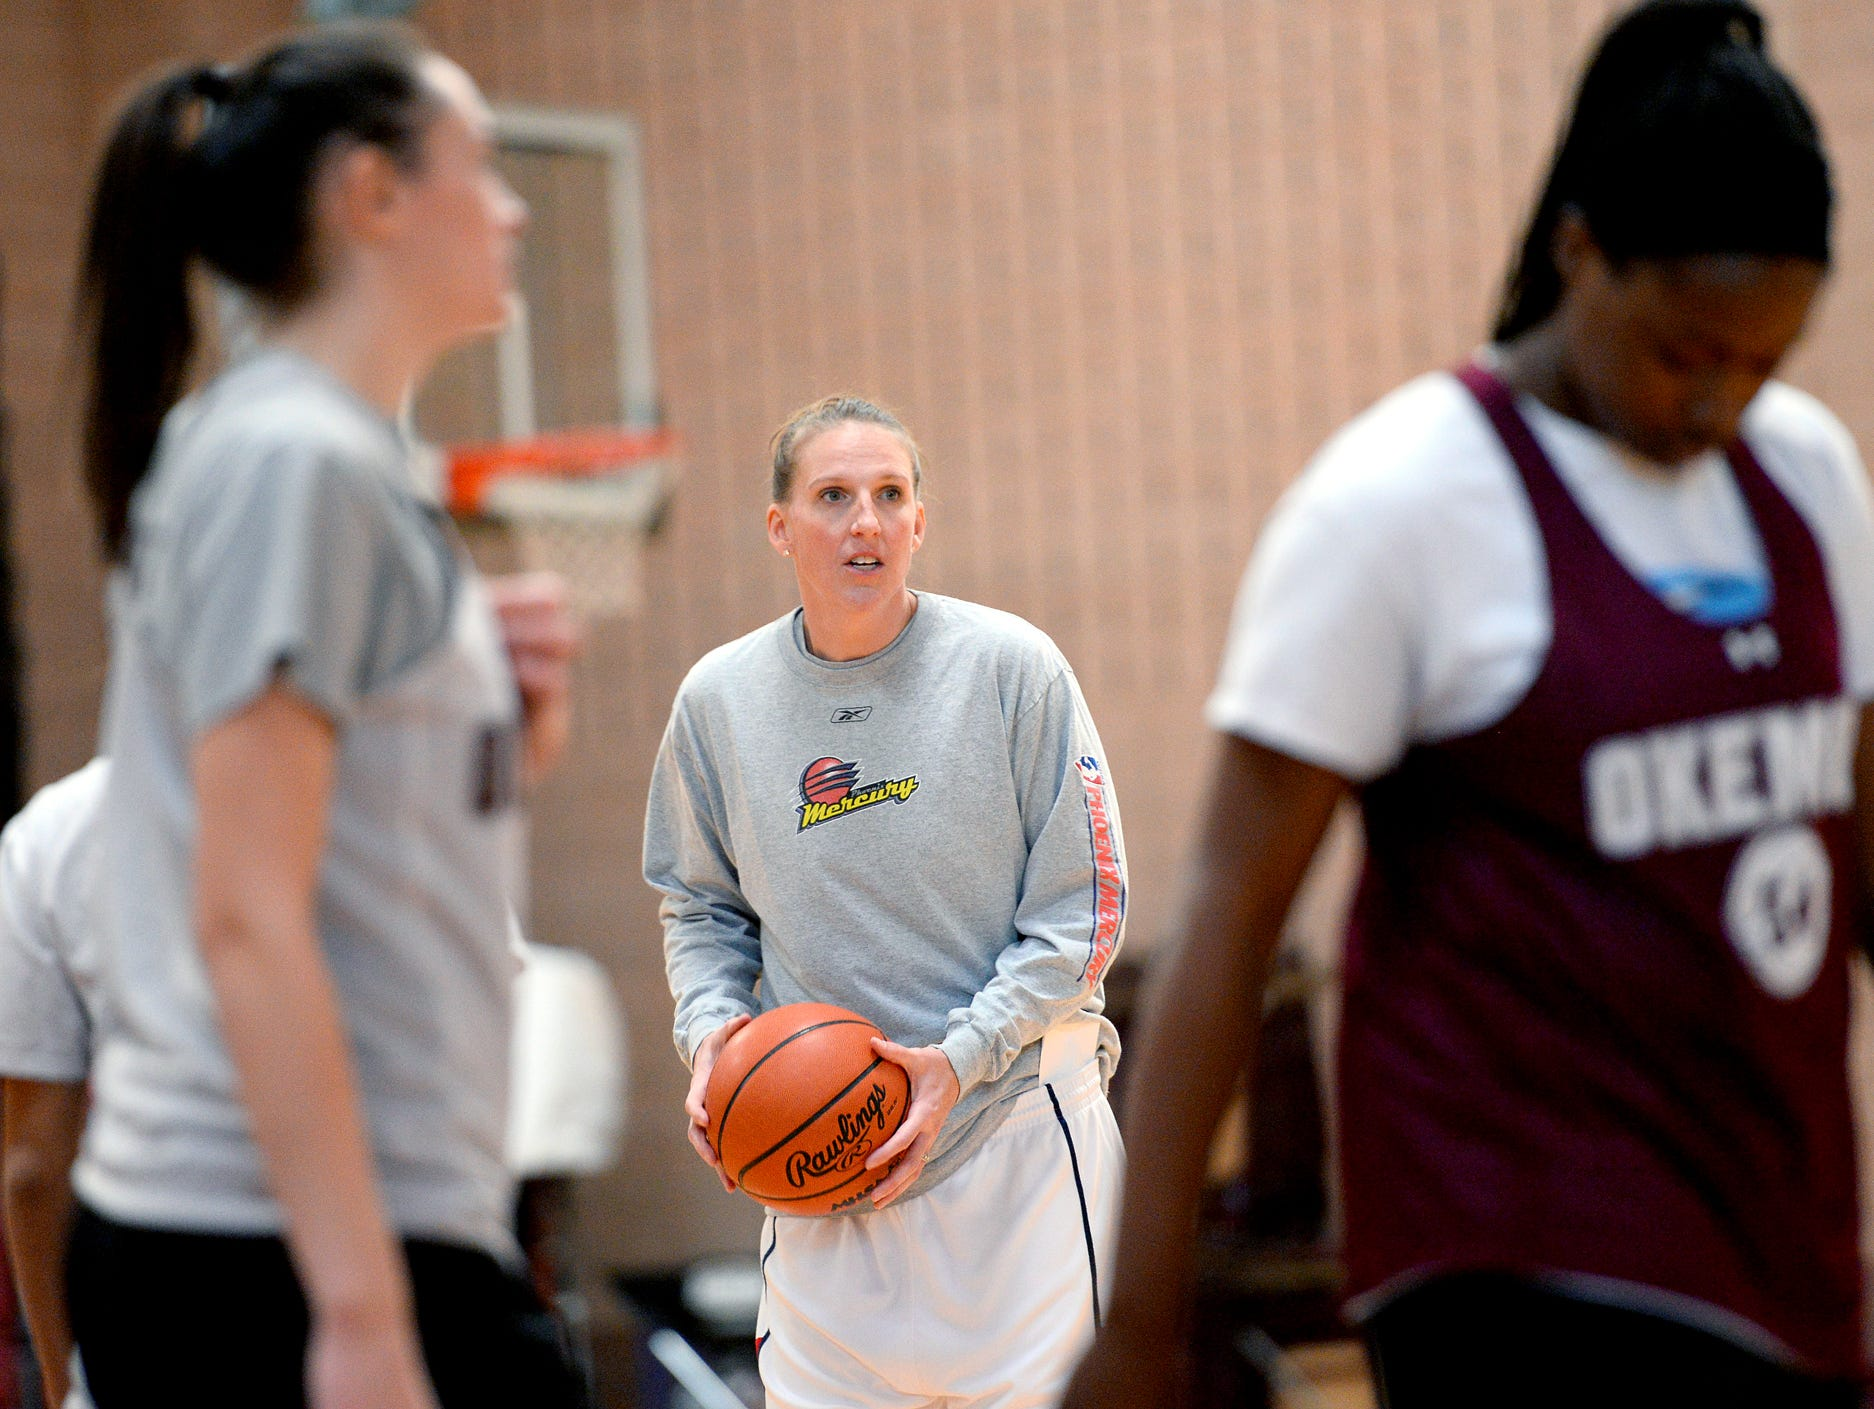 Okemos grad and former MSU and WNBA player Kristen Rasmussen coaches her Okemos High School basketball team Monday, Nov. 21, 2016 in Okemos. Rasmussen is in her first year of coaching the Chiefs.